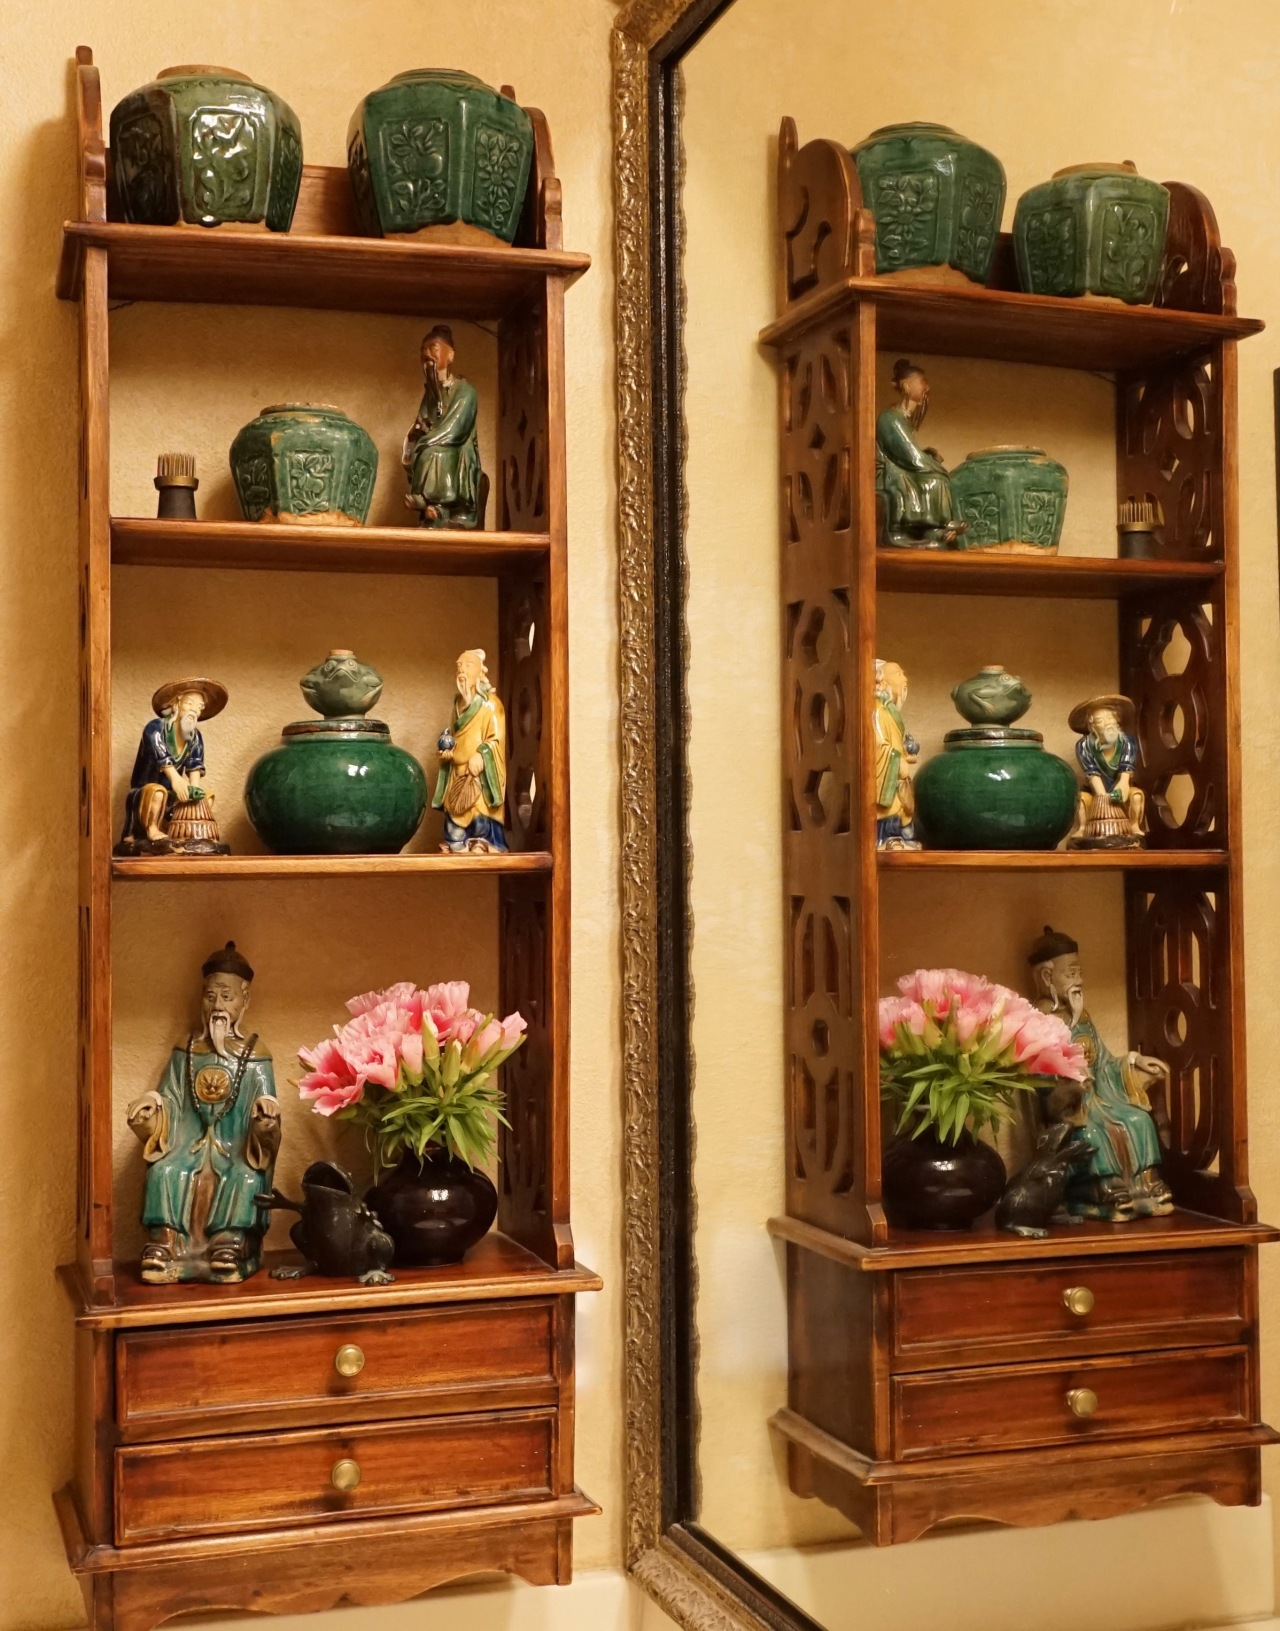 Collection of Asian pottery and figurines displayed